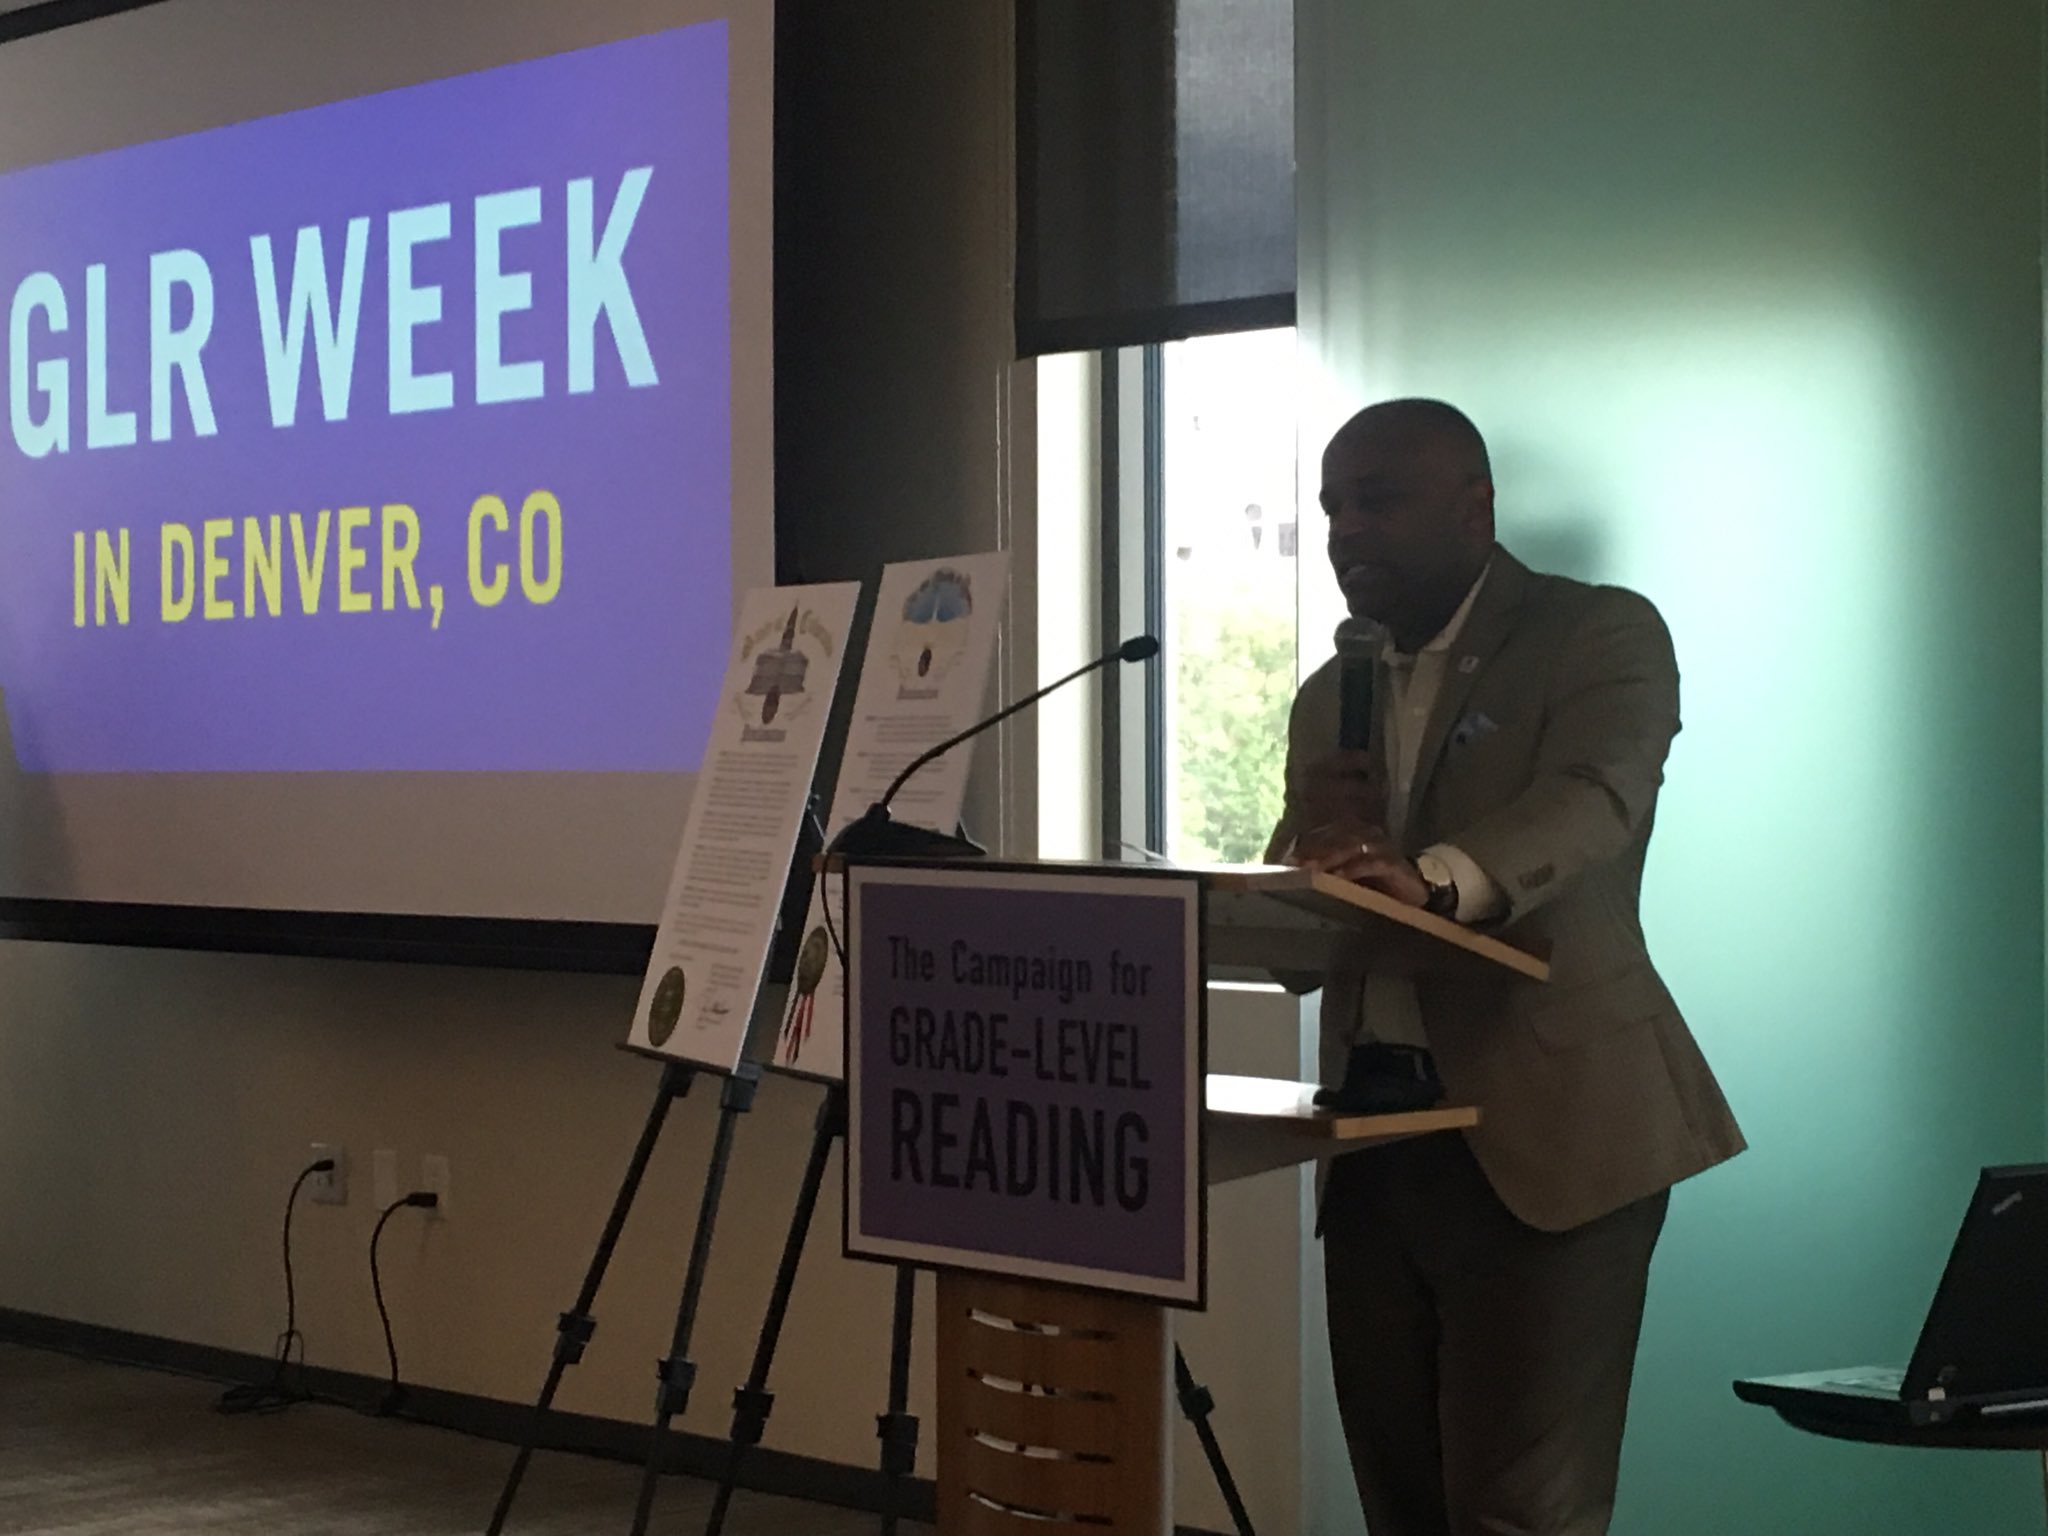 Mayor Hancock: leading his city to ensure all kids read proficiently by 3rd grade. Early learning champion!! #GLRWeek https://t.co/ktxQDUFAsk